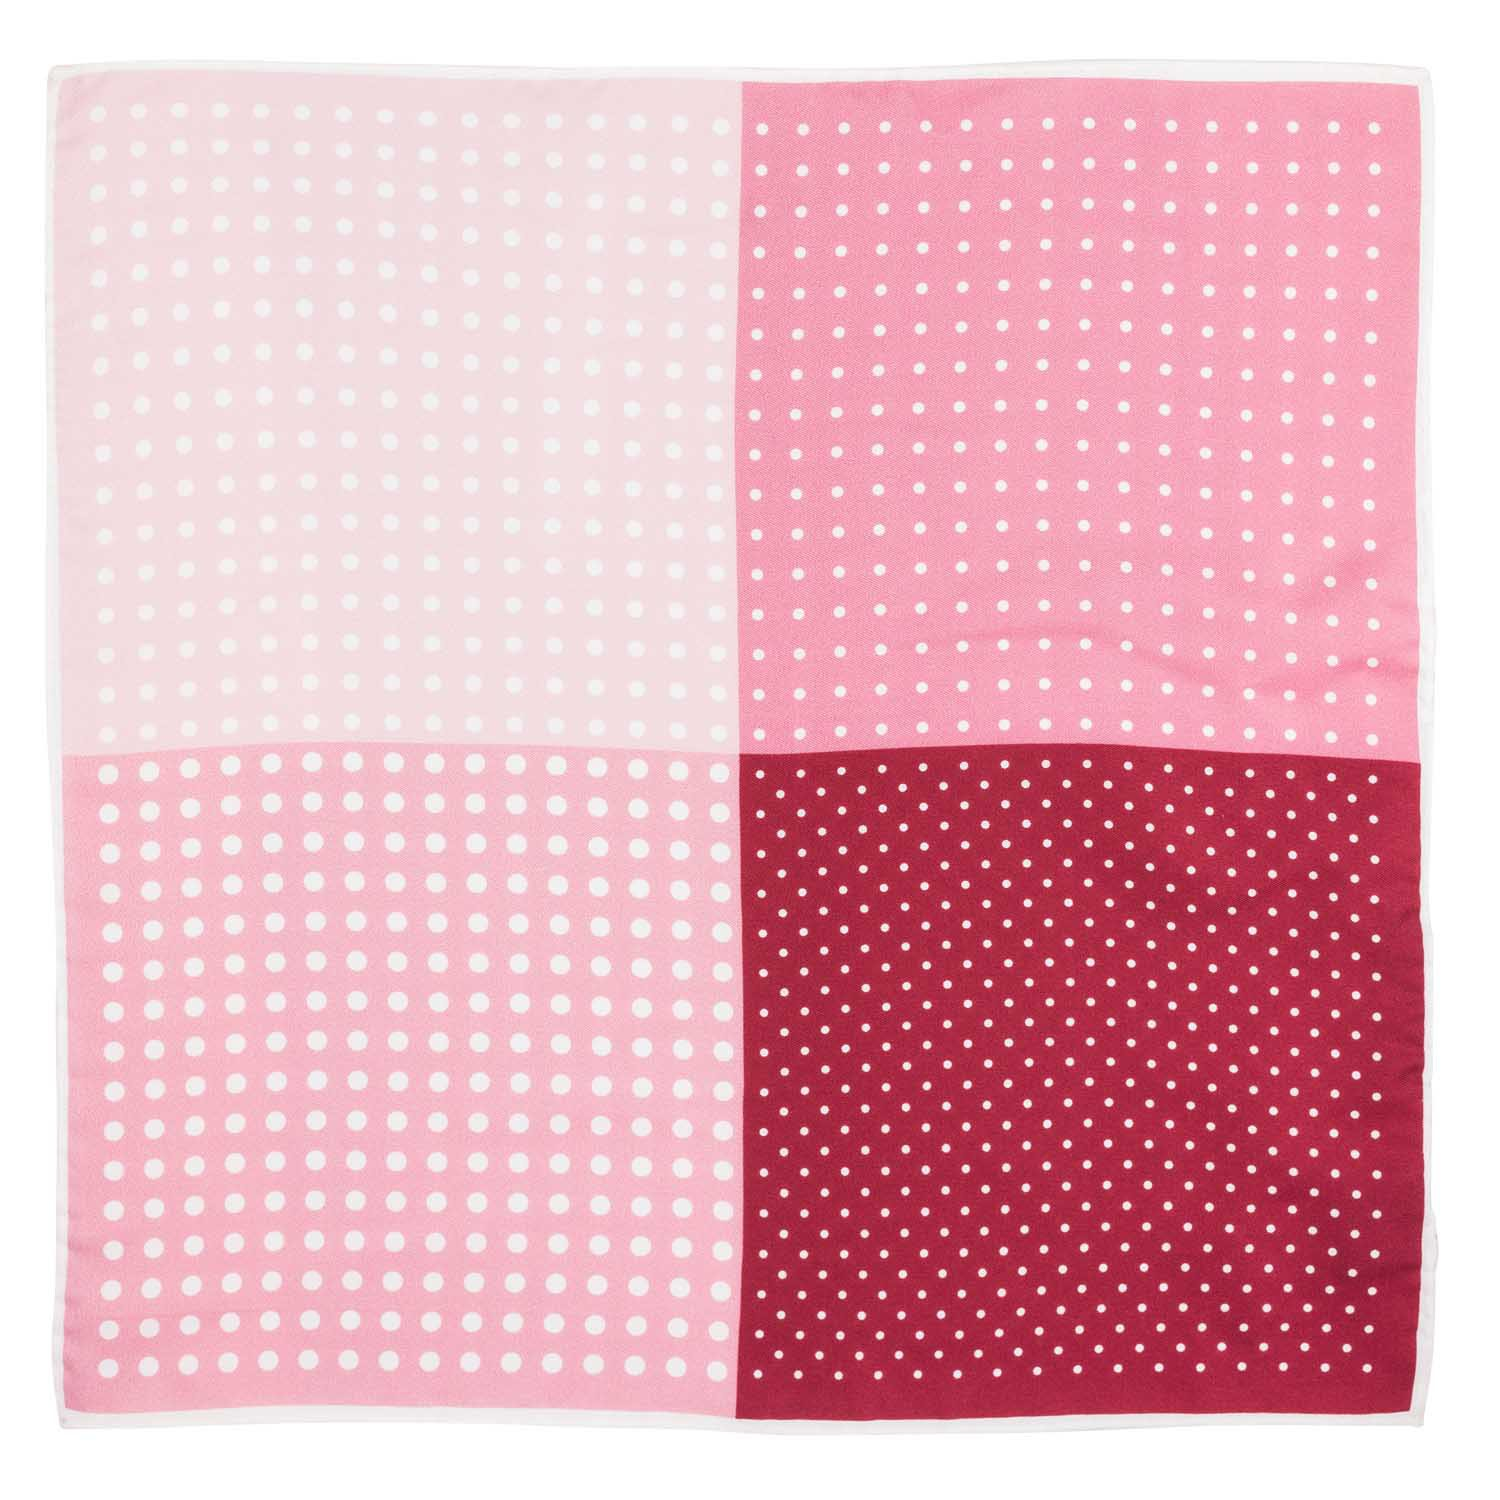 Four Square Polka Pink Silk Pocket Square For Men By The Tie Hub